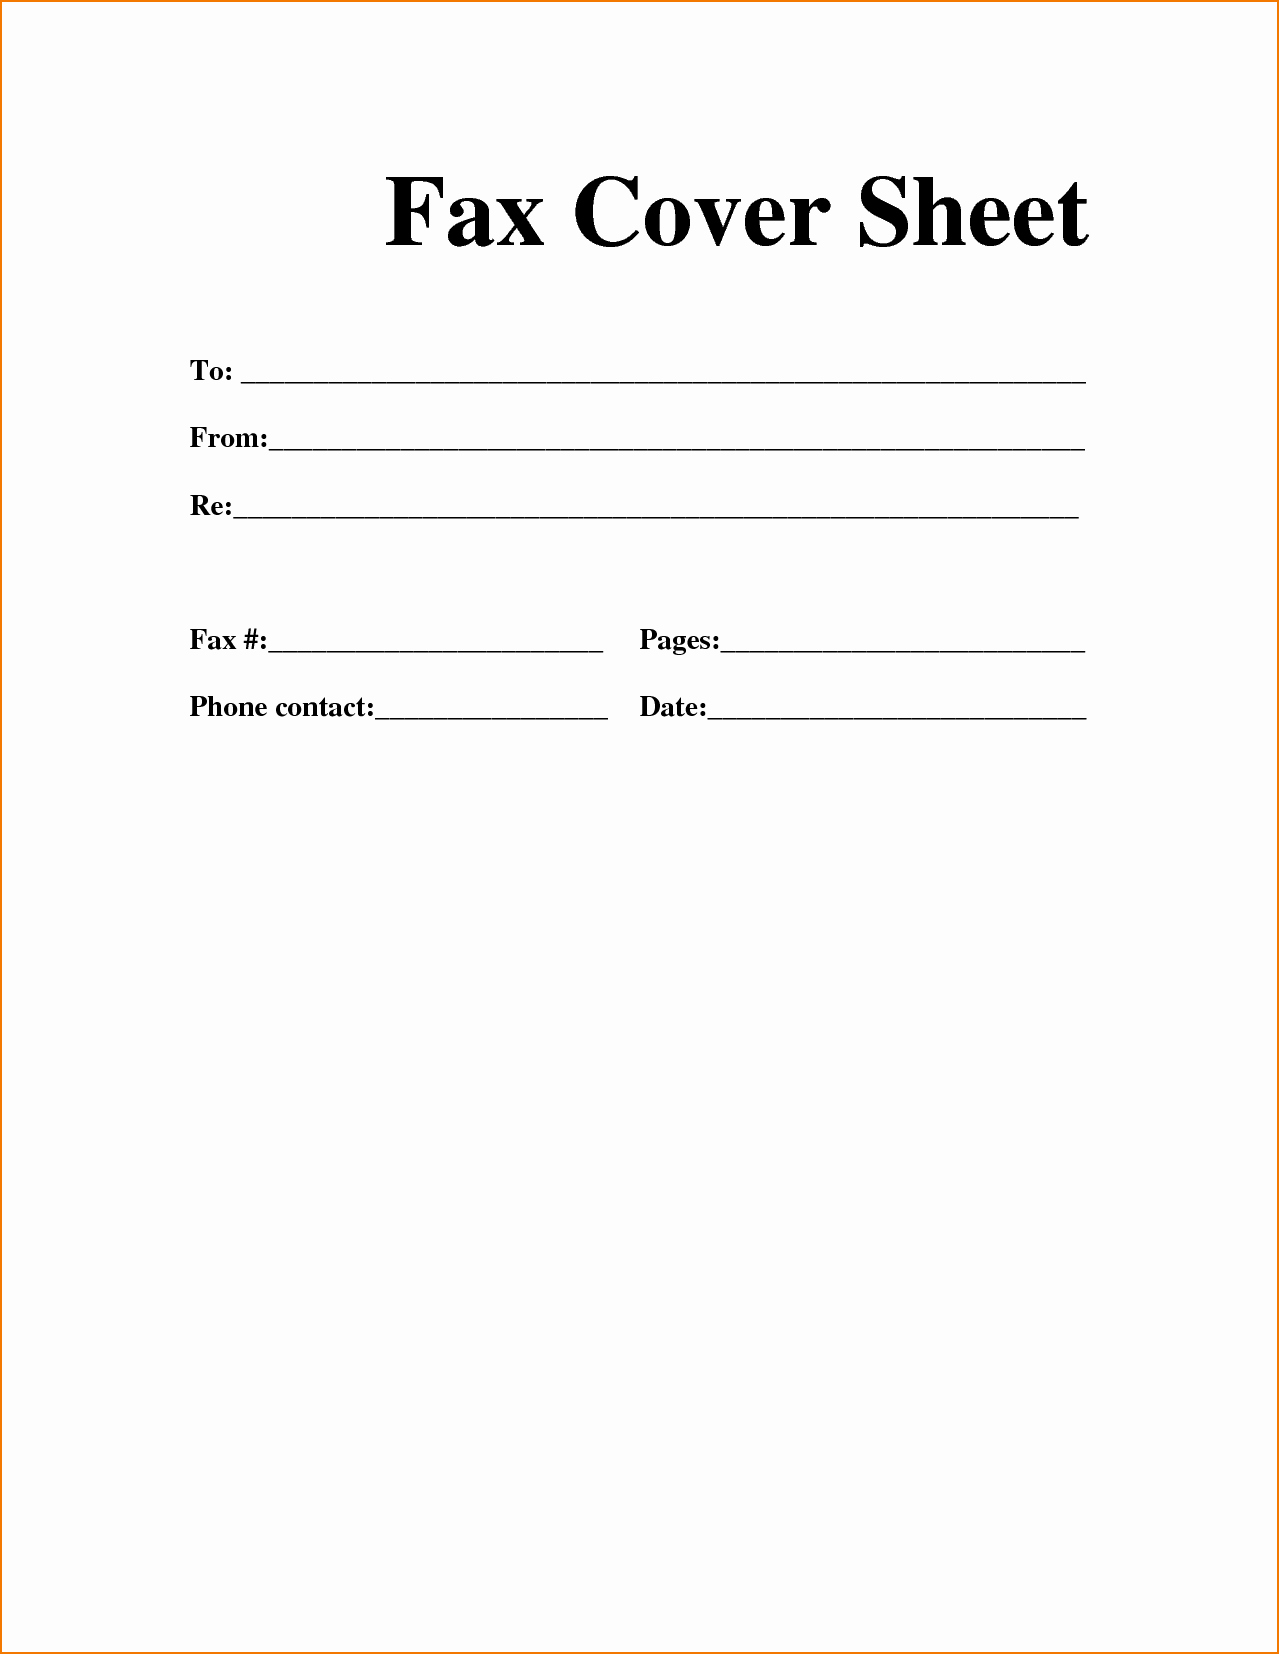 Fax Cover Sheet Sample Template Awesome 6 General Fax Cover Sheet